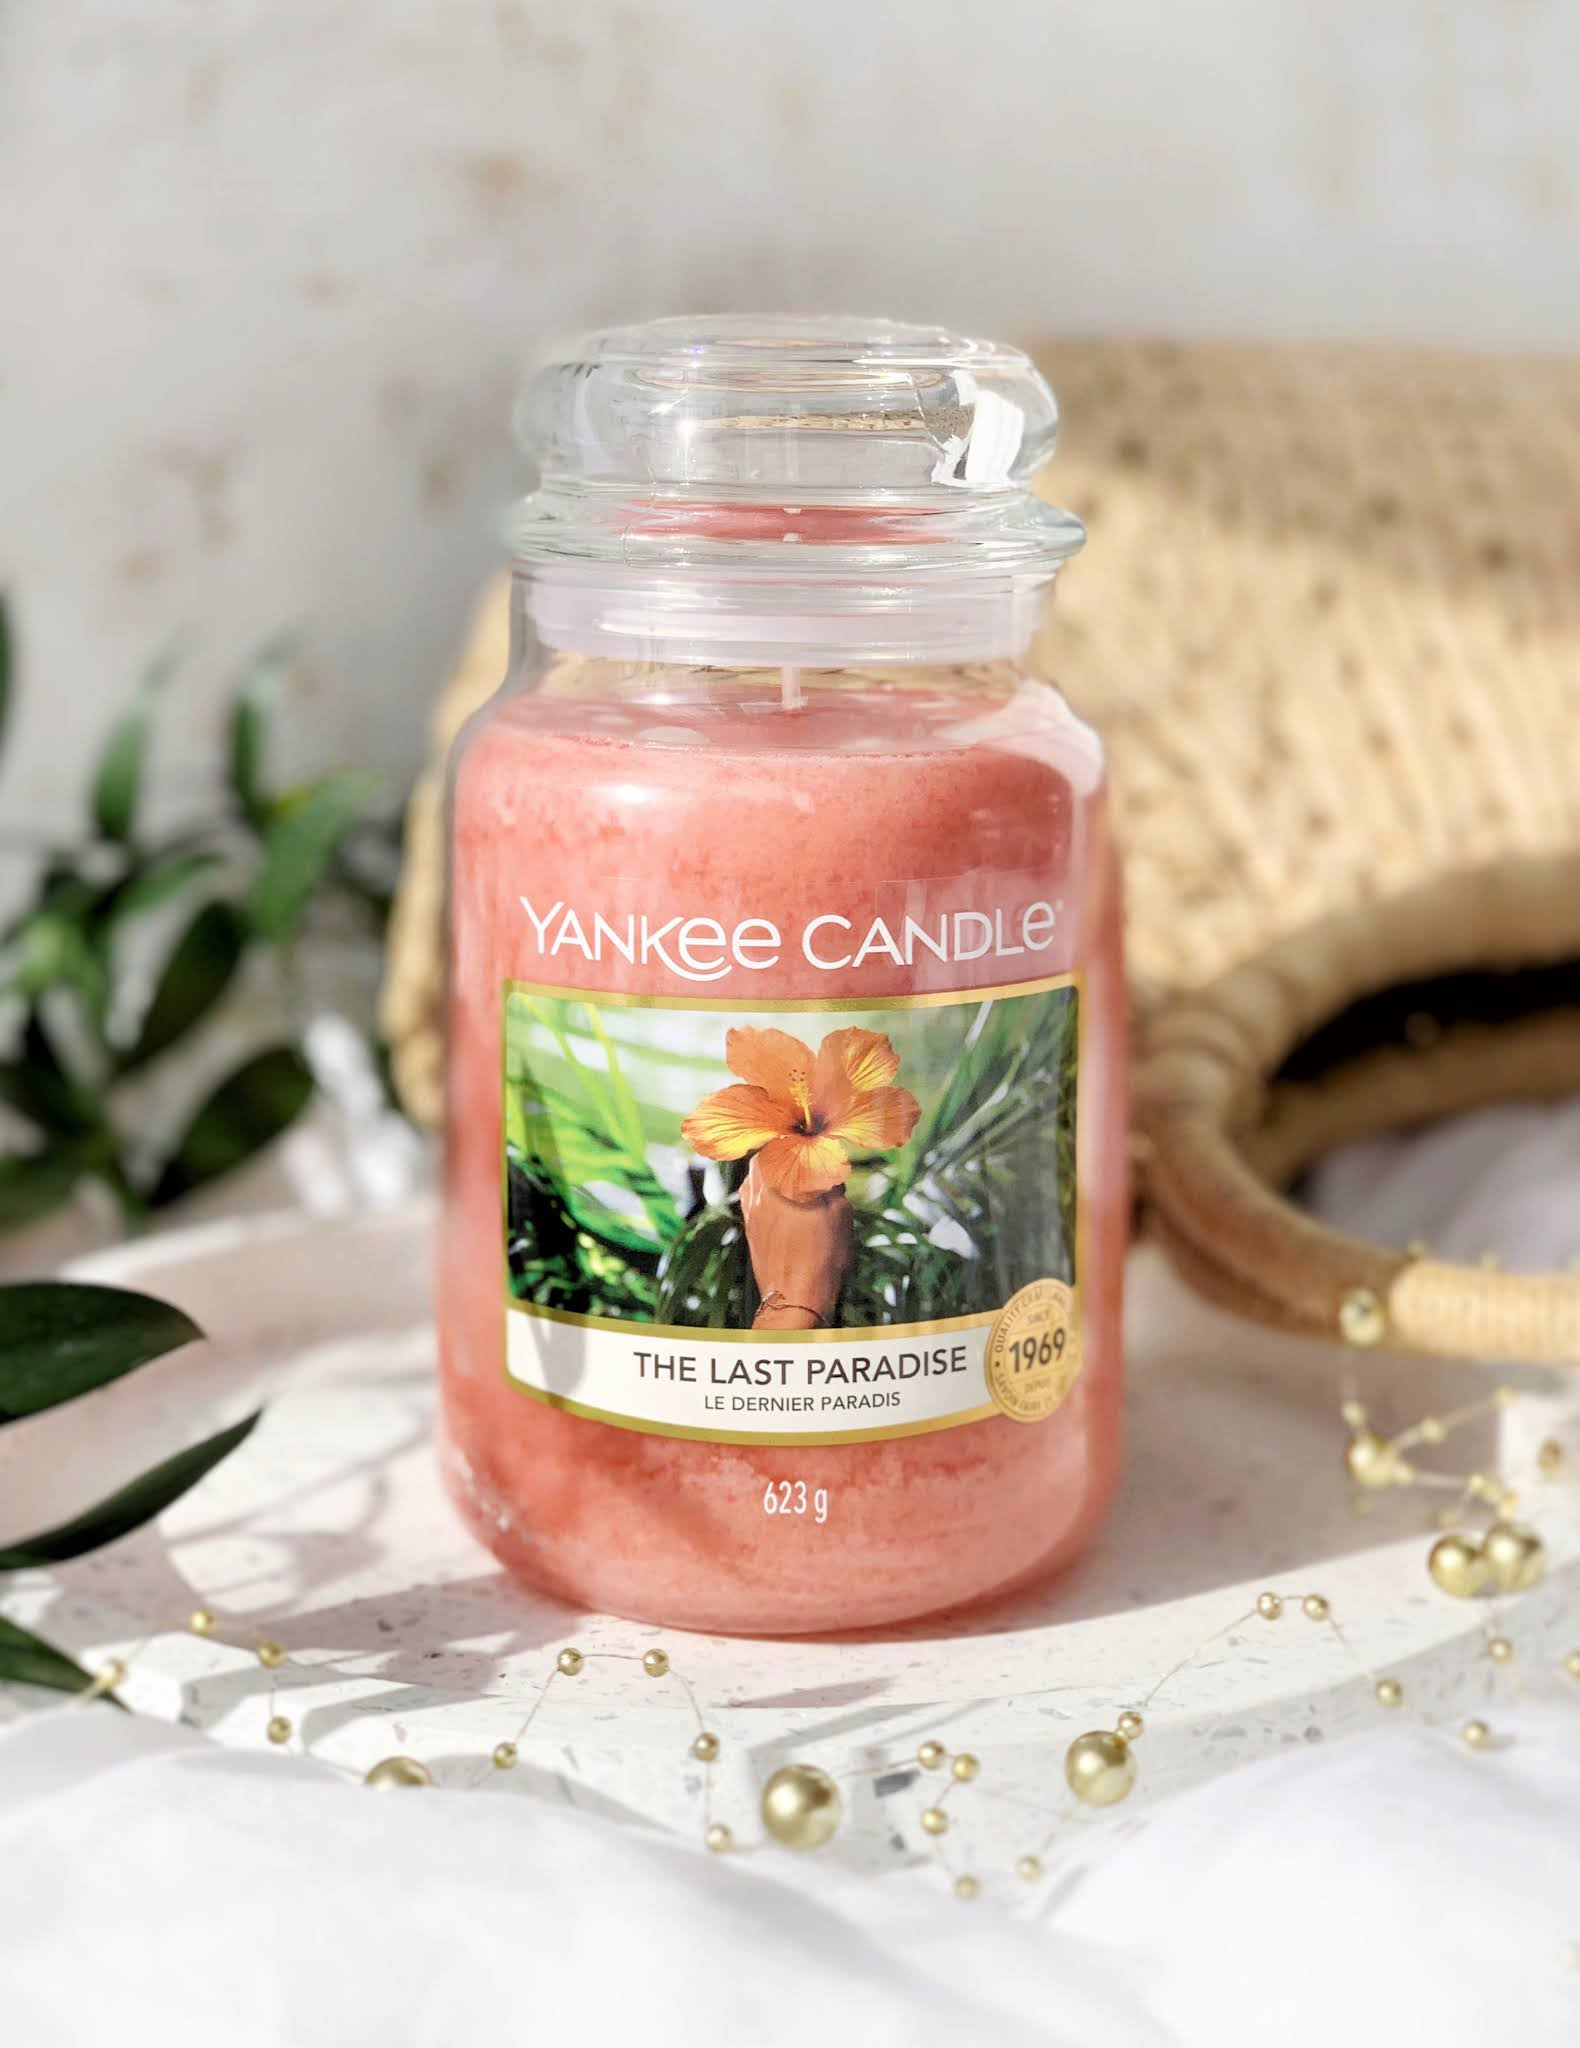 The-Last-Paradise -Yankee-Candle